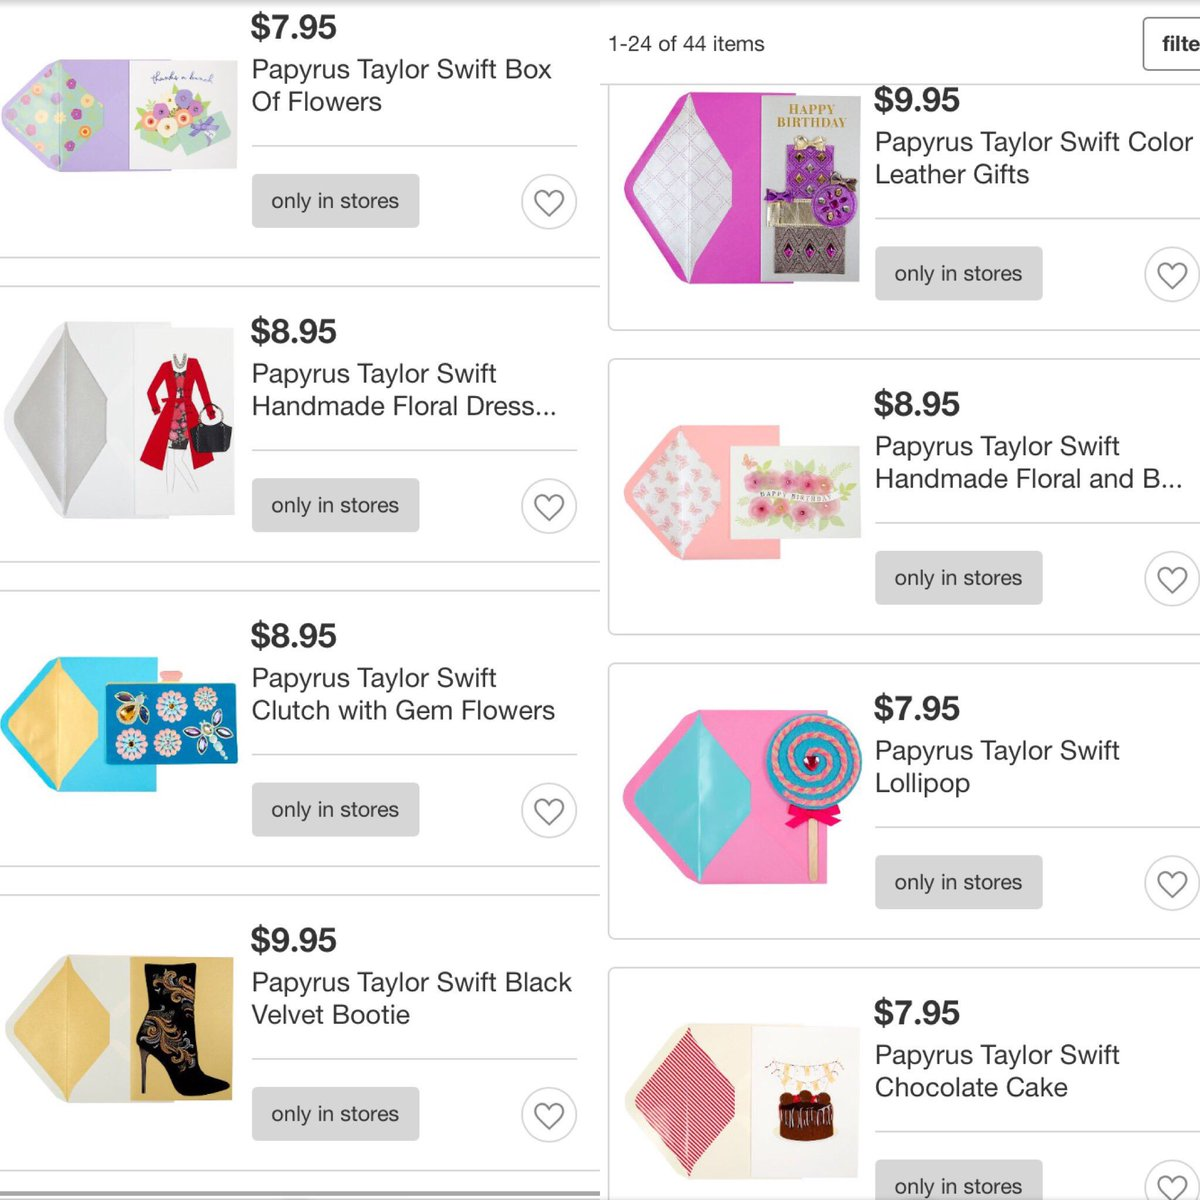 Taylor Swift News On Twitter Taylors Papyrus Greeting Cards Collection Is Now Available At Target Tco KqkIgDPjCO